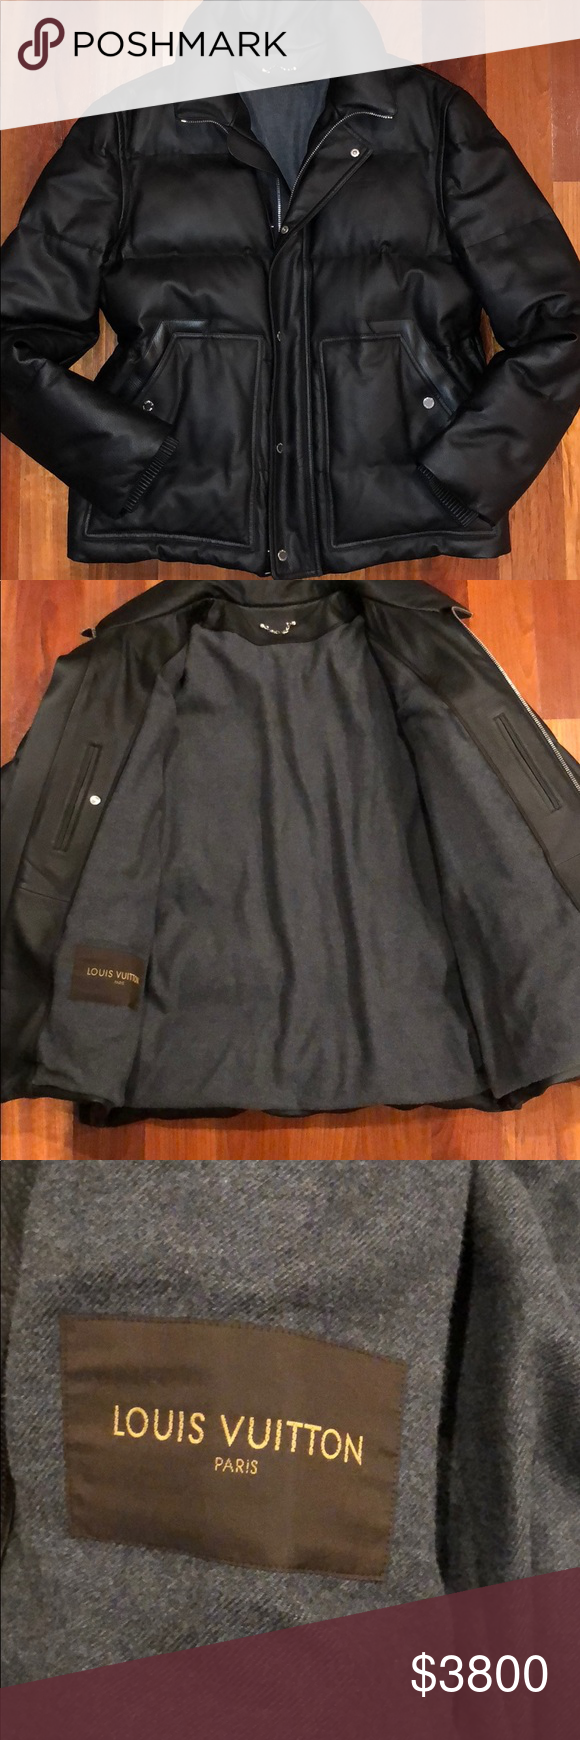 962428d25ee8 Authentic Louis Vuitton Men s Leather Down Jacket Worn once! Limited  Edition! Great condition! Stunning! Louis Vuitton Jackets   Coats